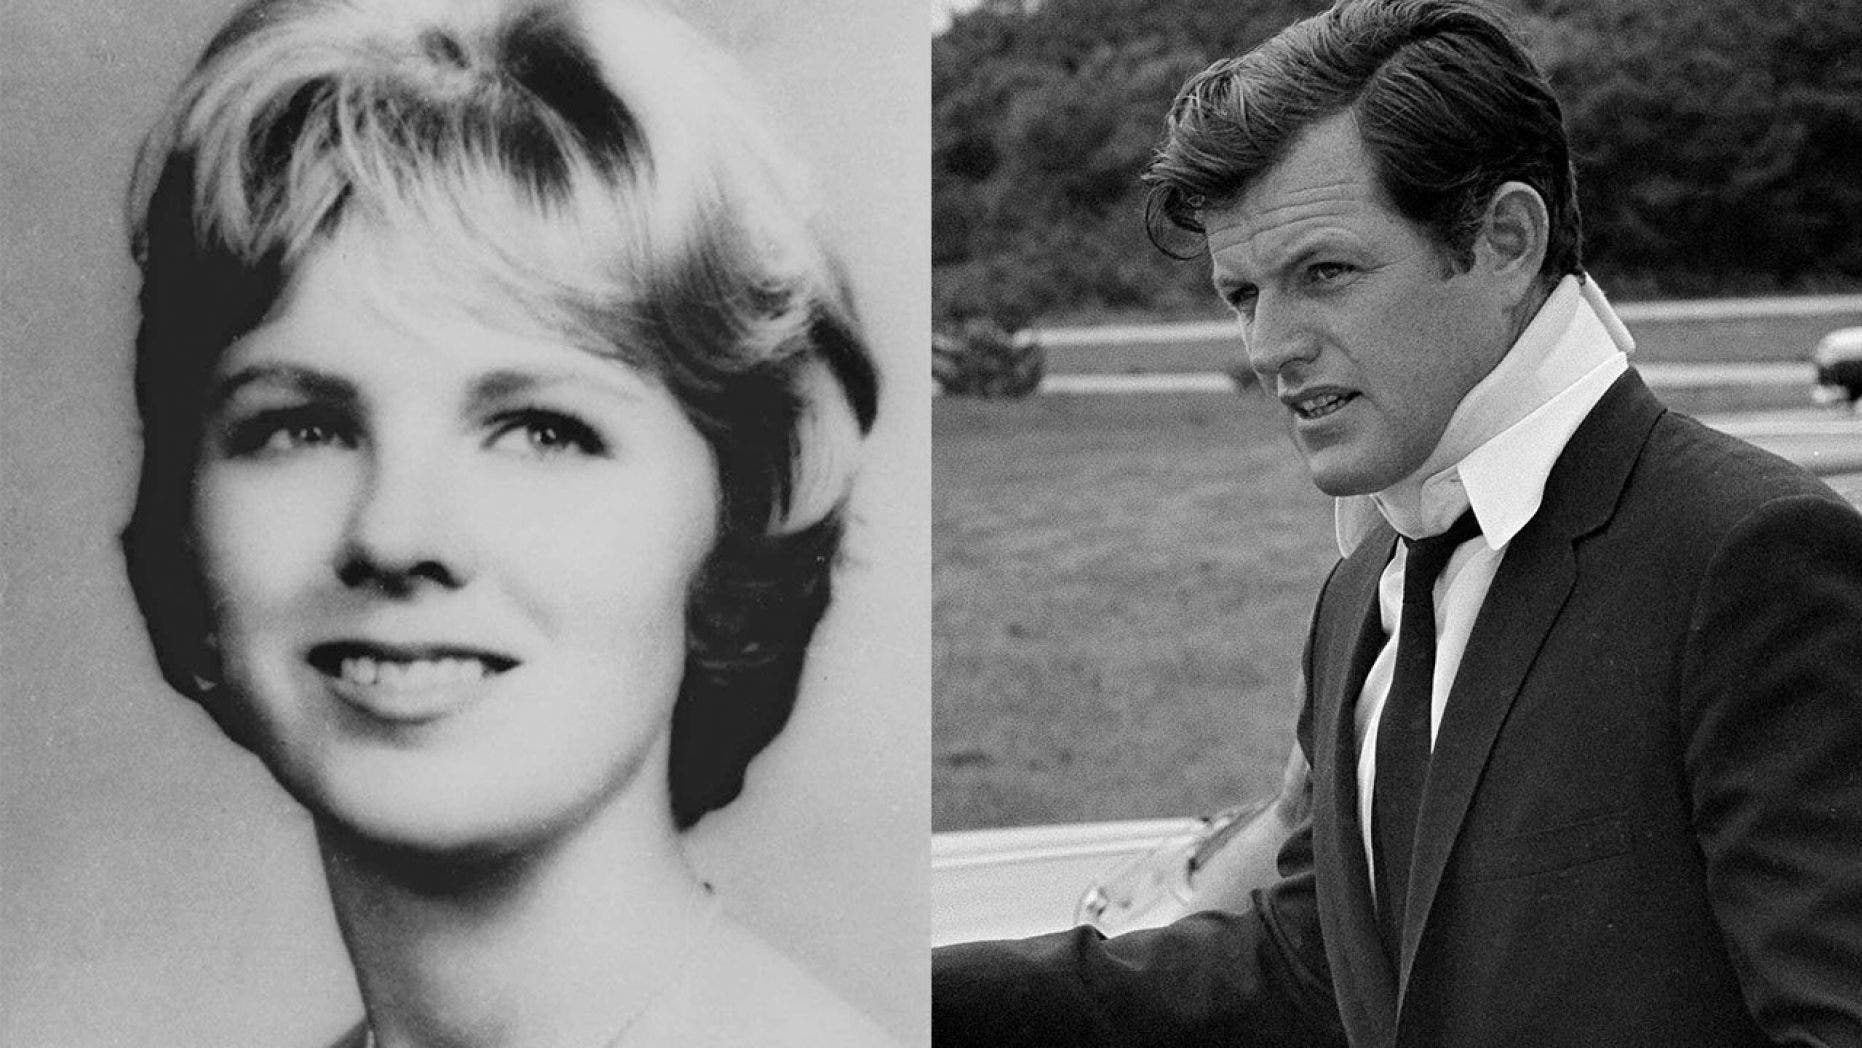 Westlake Legal Group 032218_chappaquiddick_mini-doc1280 This Day in History: July 18 fox-news/us/this-day-in-history fox news fnc/us fnc article a264d01e-5c31-5f93-899f-3d0a29d9b618